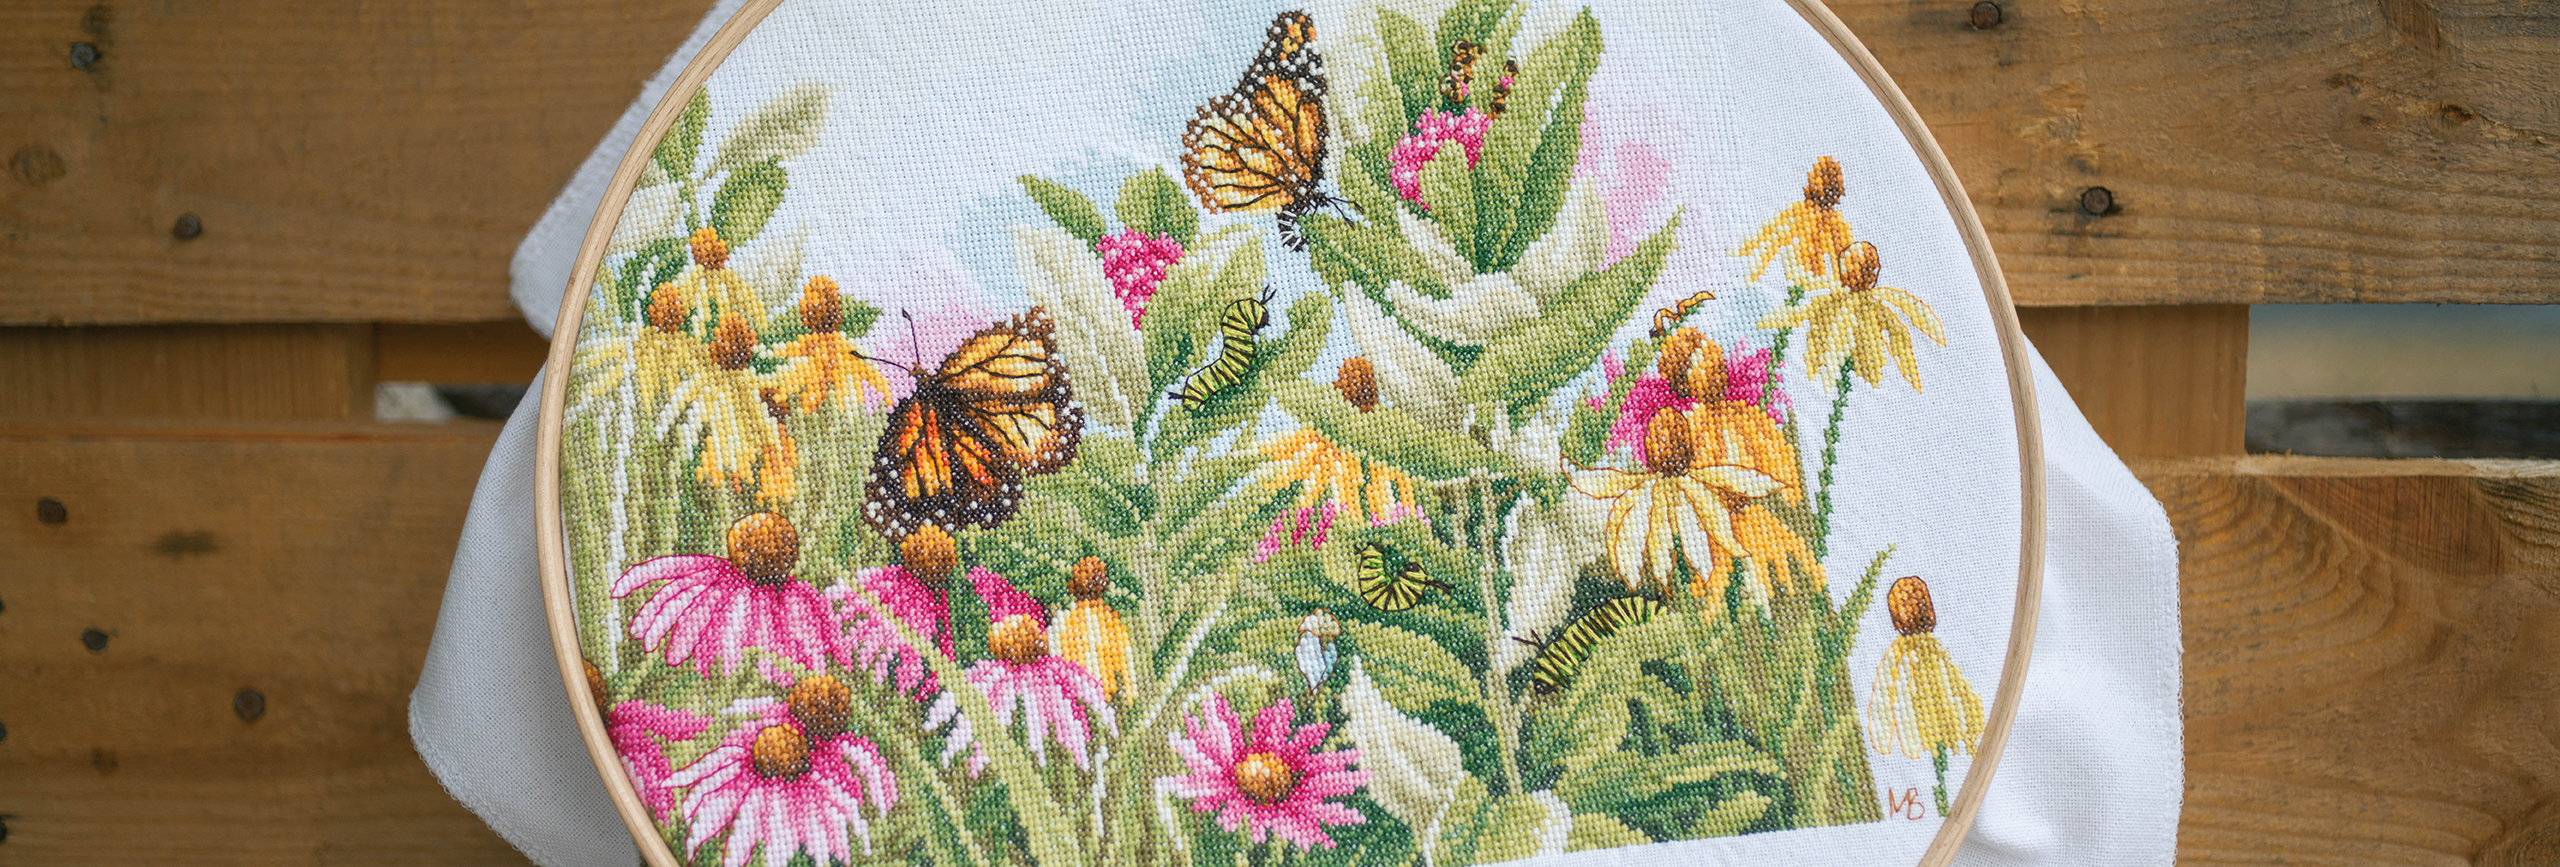 Counted Cross Stitch 0179972